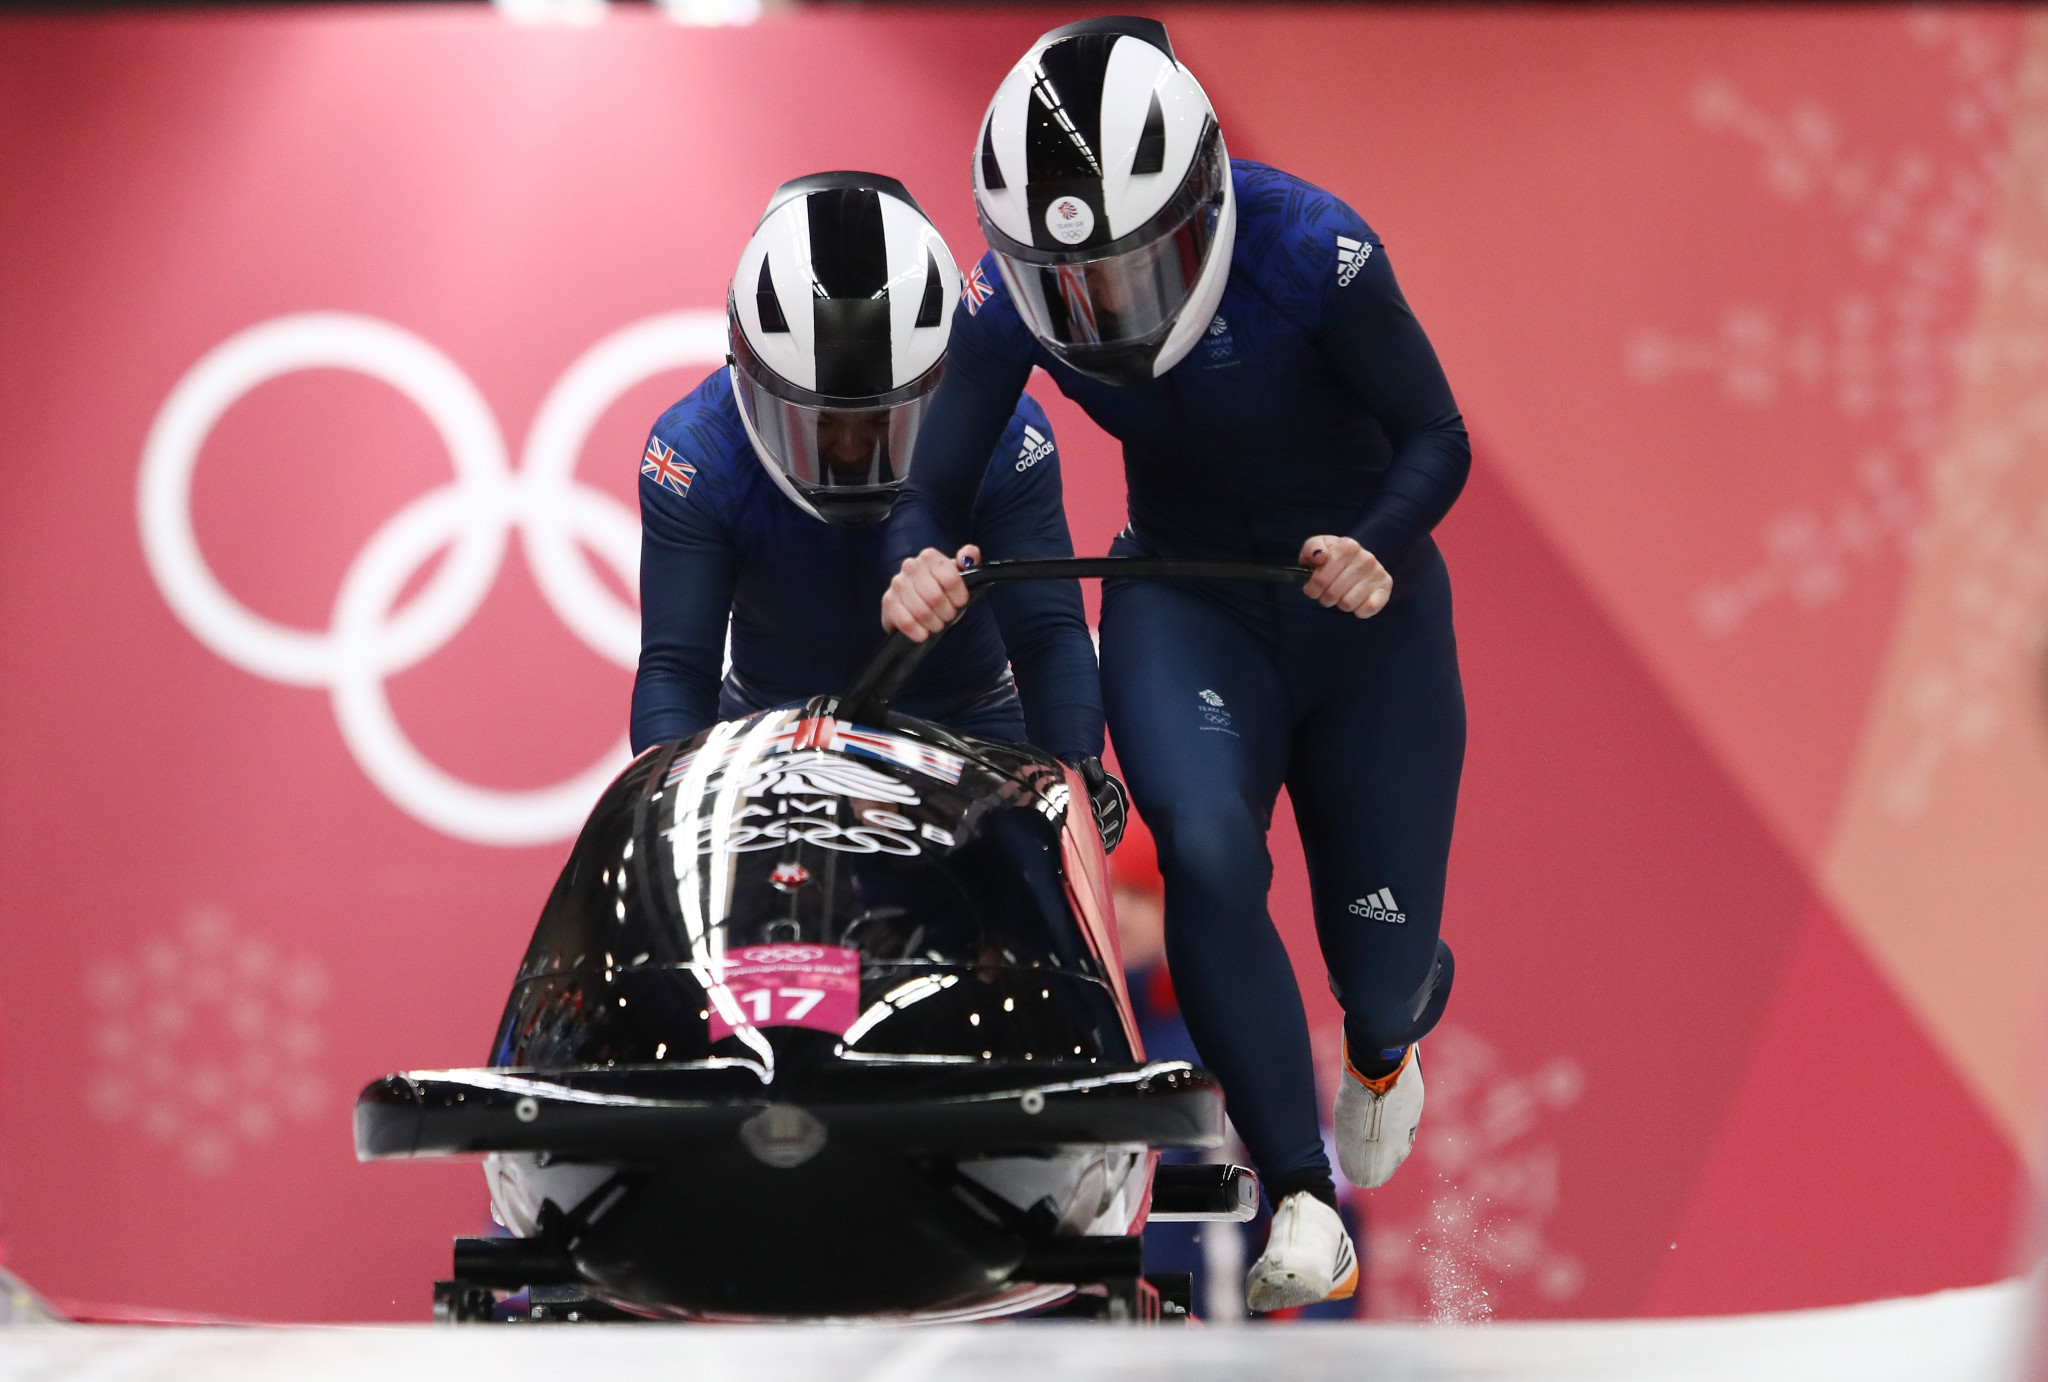 Push athlete Mica Moore will be taking a break from bobsleigh and from partnering Mica McNeill as she focuses on her studies ©Getty Images